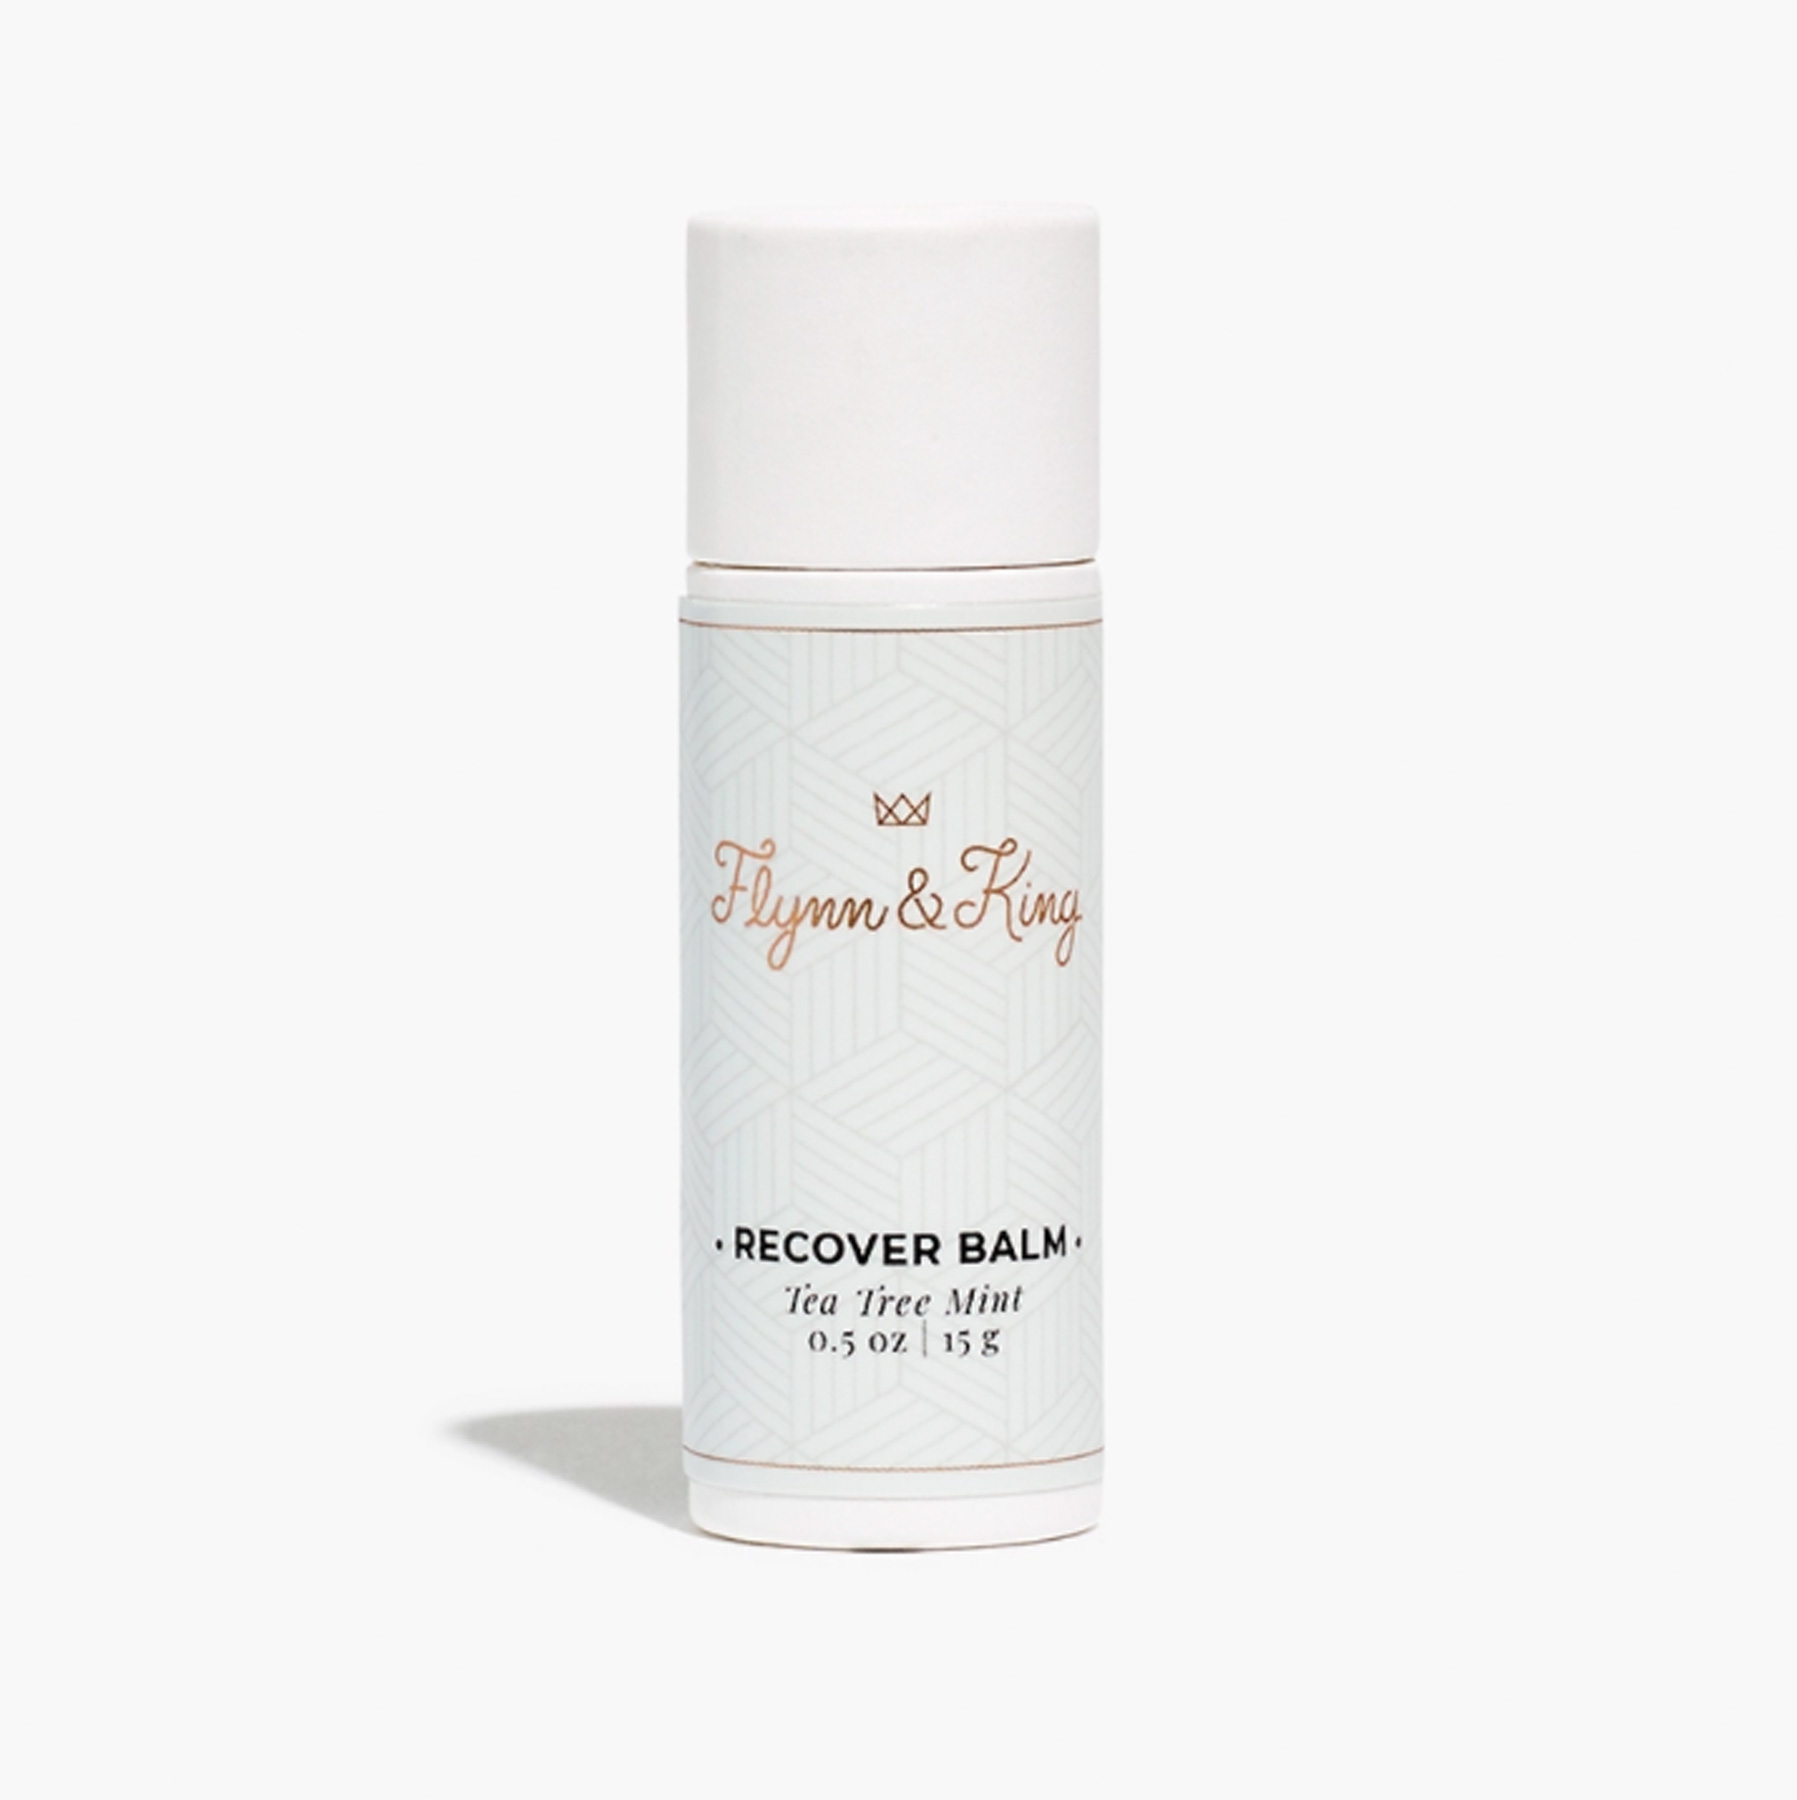 Cheap Christmas Gifts 2020: Flynn & King Recover Vegan All-Over Balm in Tea Tree Mint